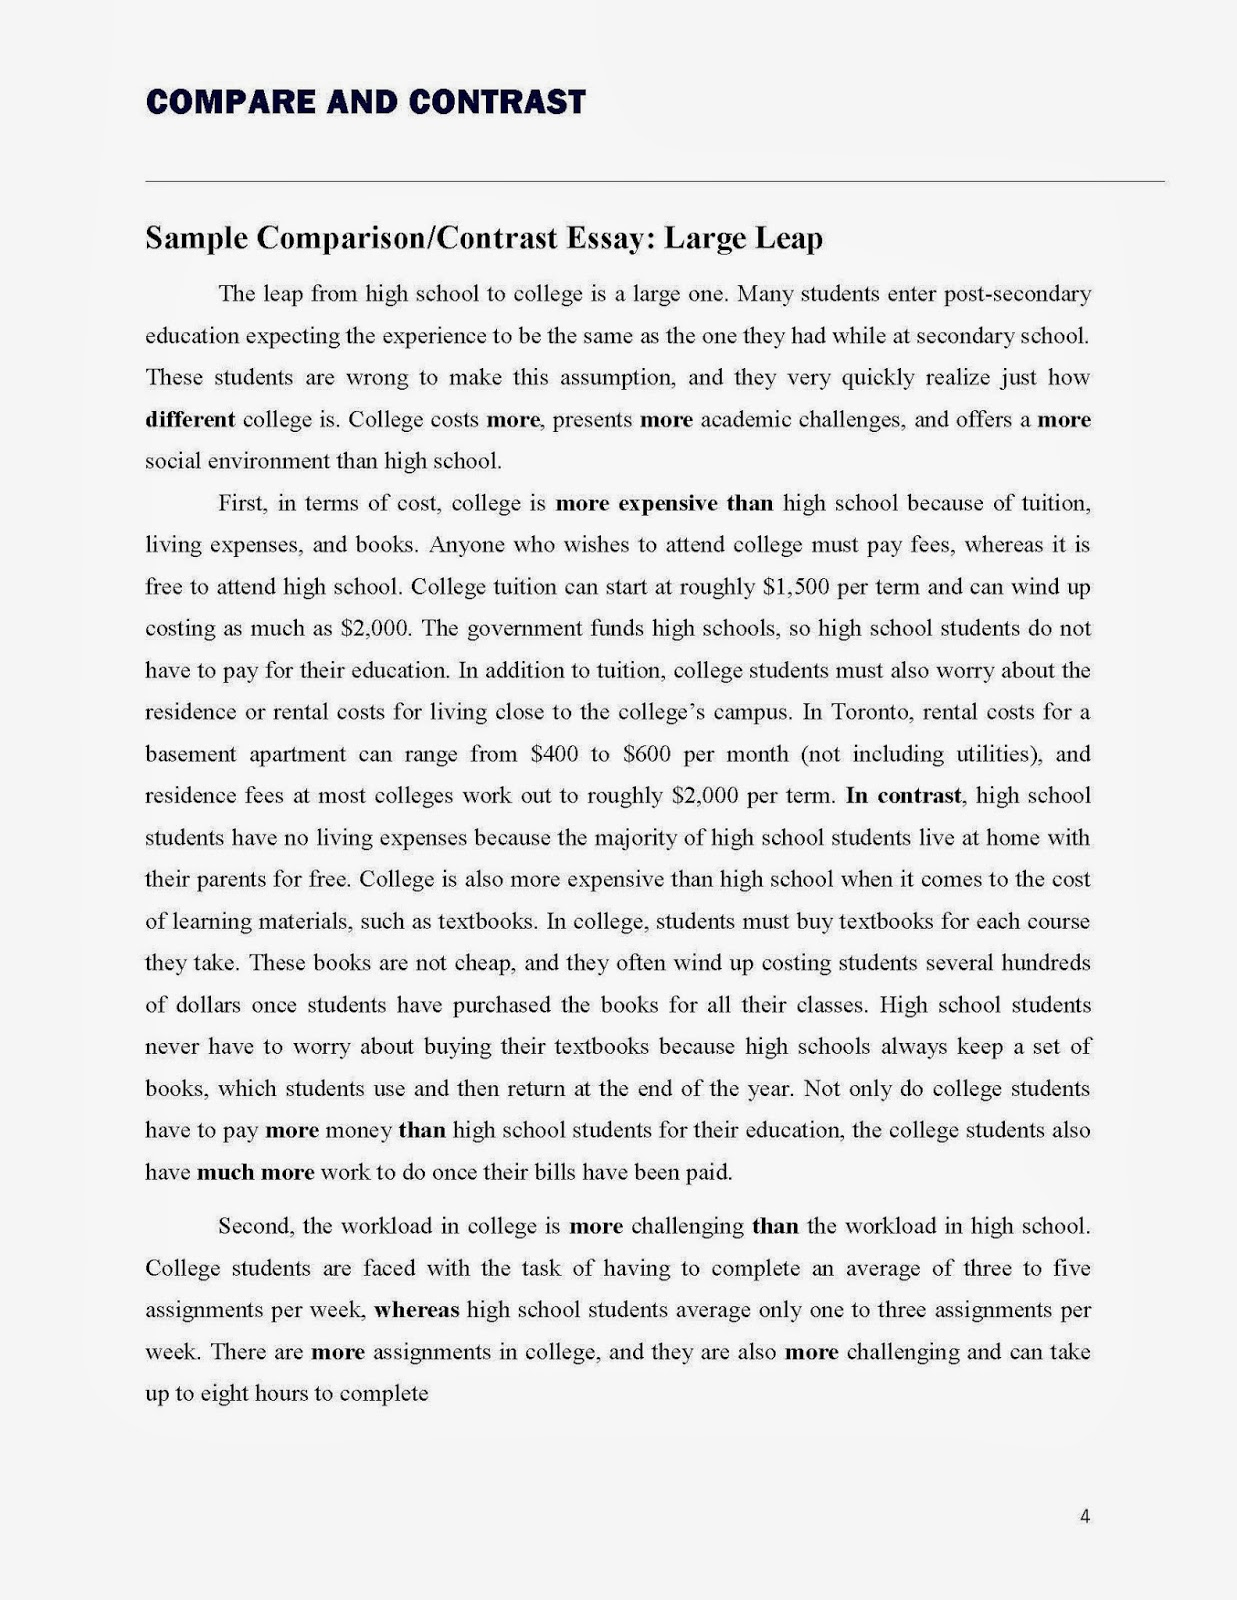 011 Good Compare And Contrast Essay Compare20and20contrast20essay Page 4 Unbelievable How To Write A Conclusion Paragraph For Examples Transition Words Essays Pdf Full